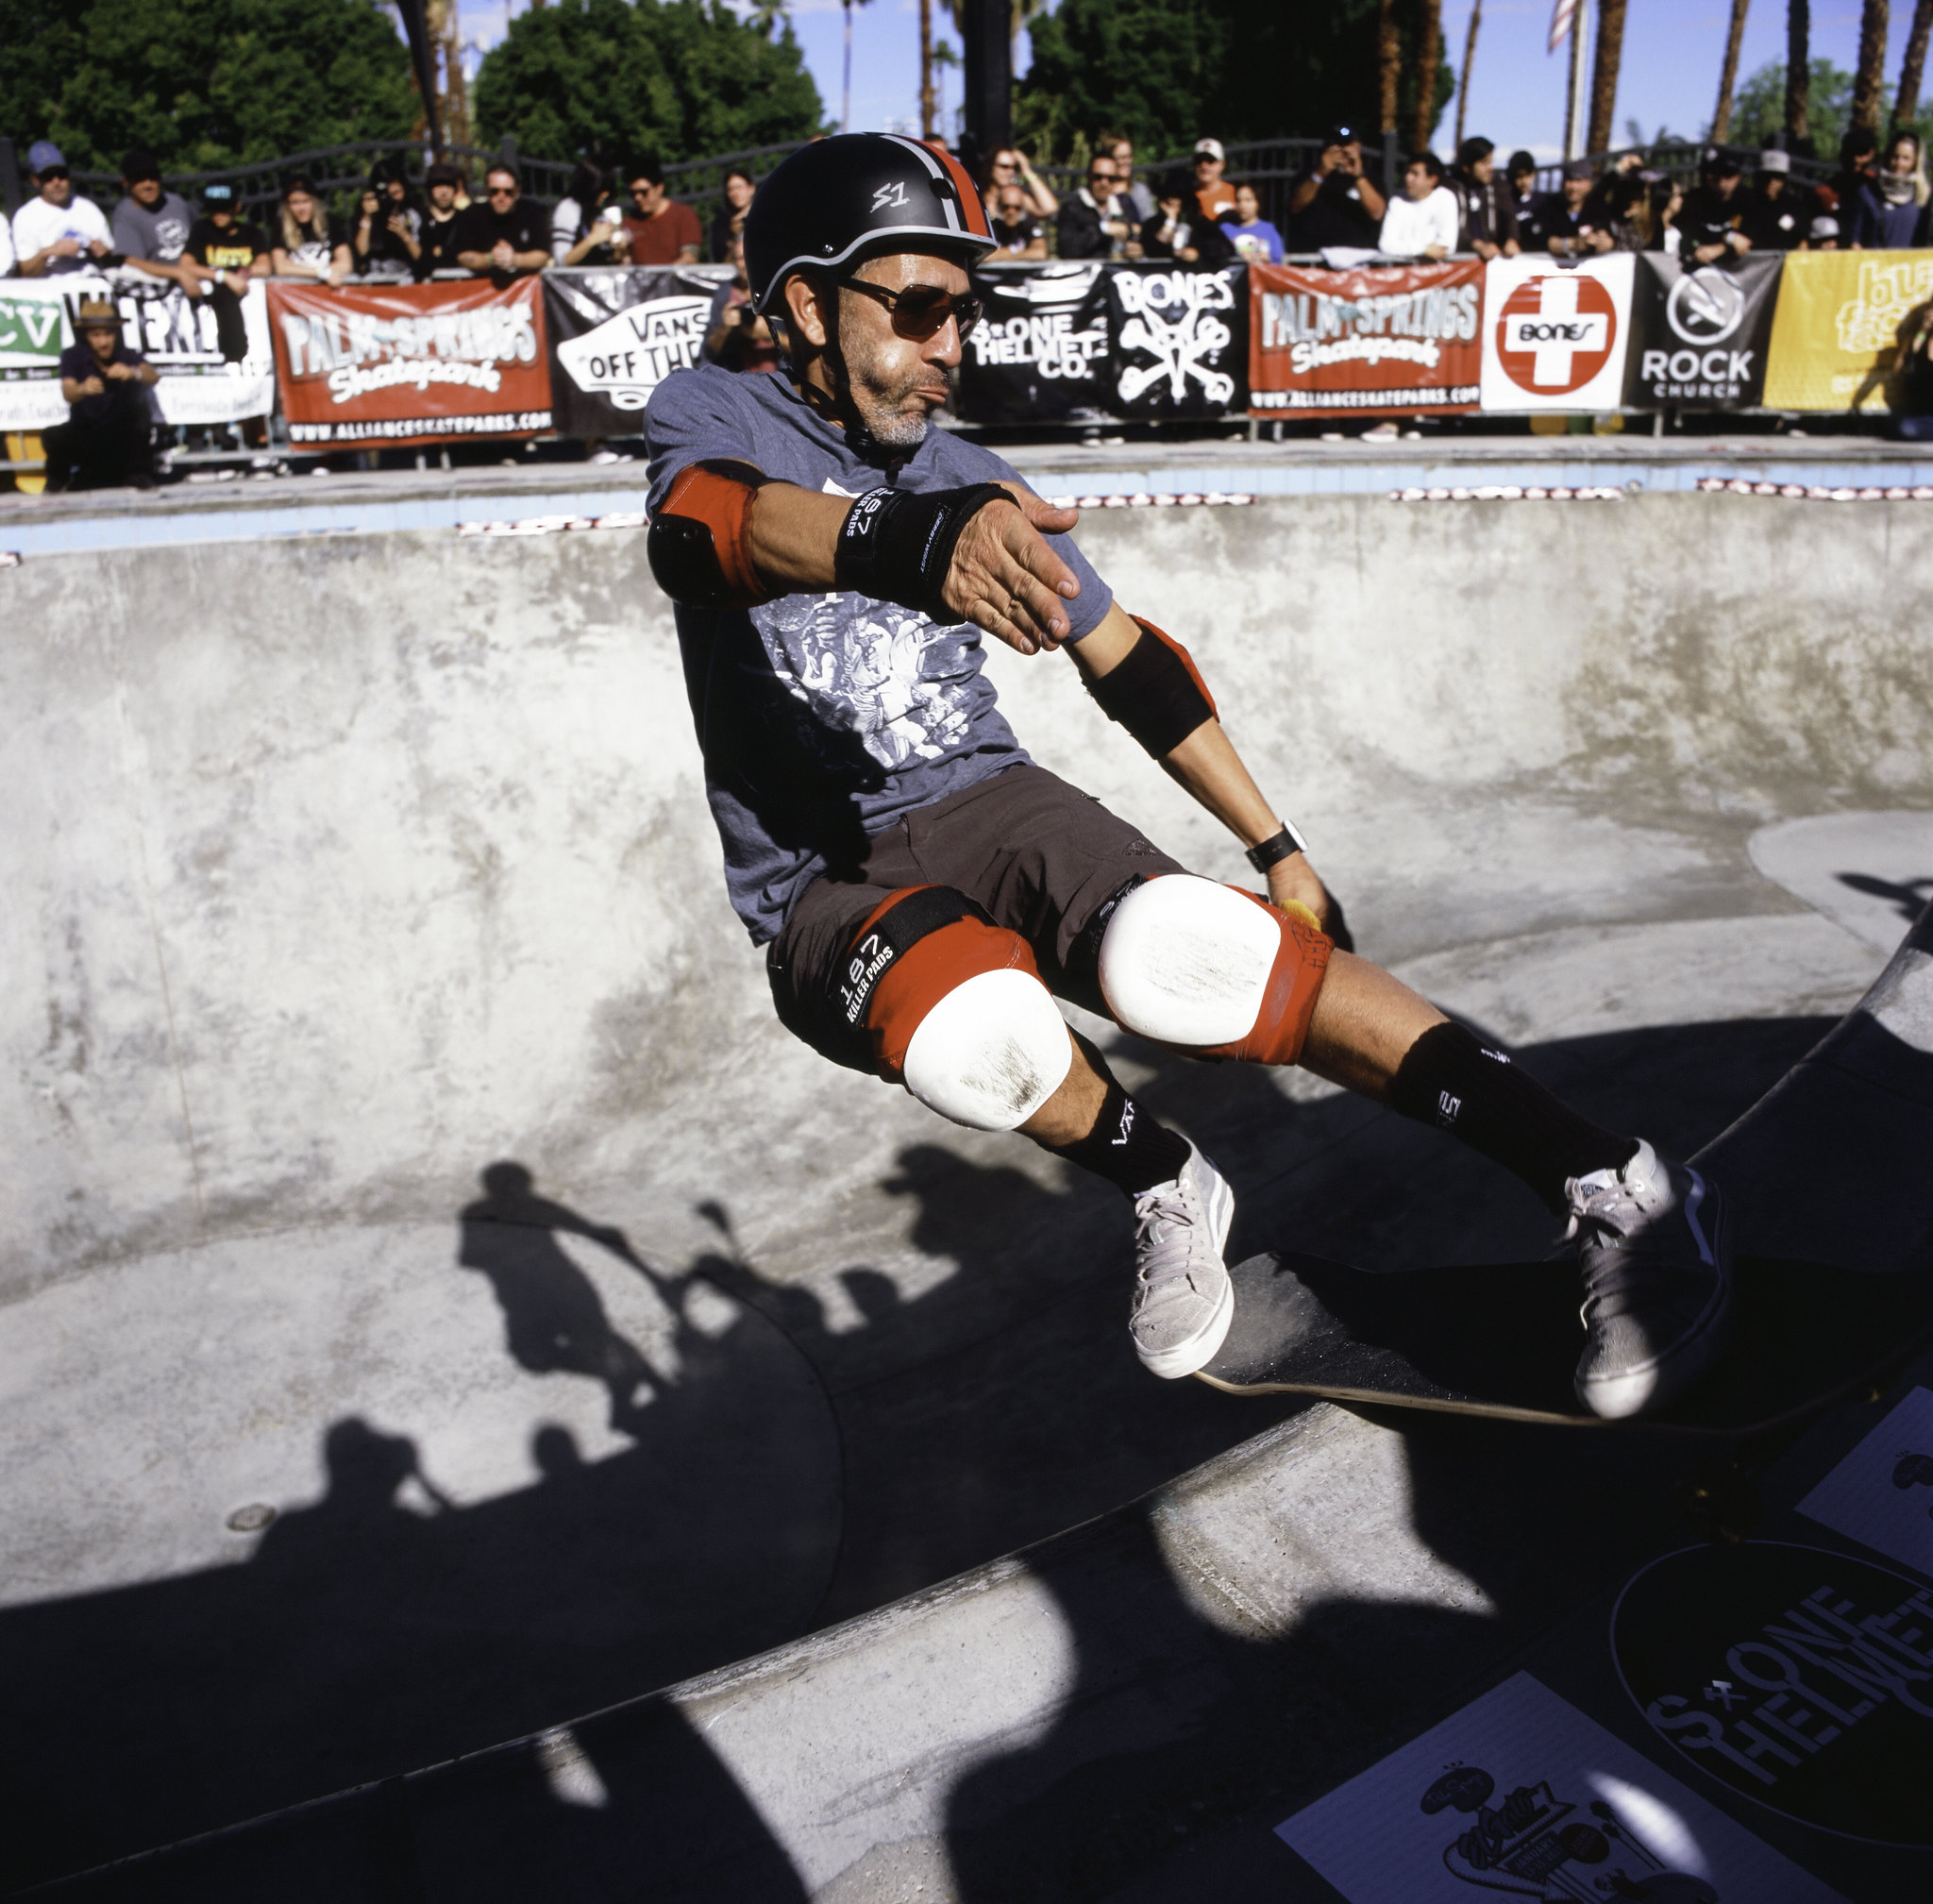 ElGatoClassic-photography-Skateboard-eddie elguera-Palmsprings-Analog-hasselblad-120mm-joe-segre-13